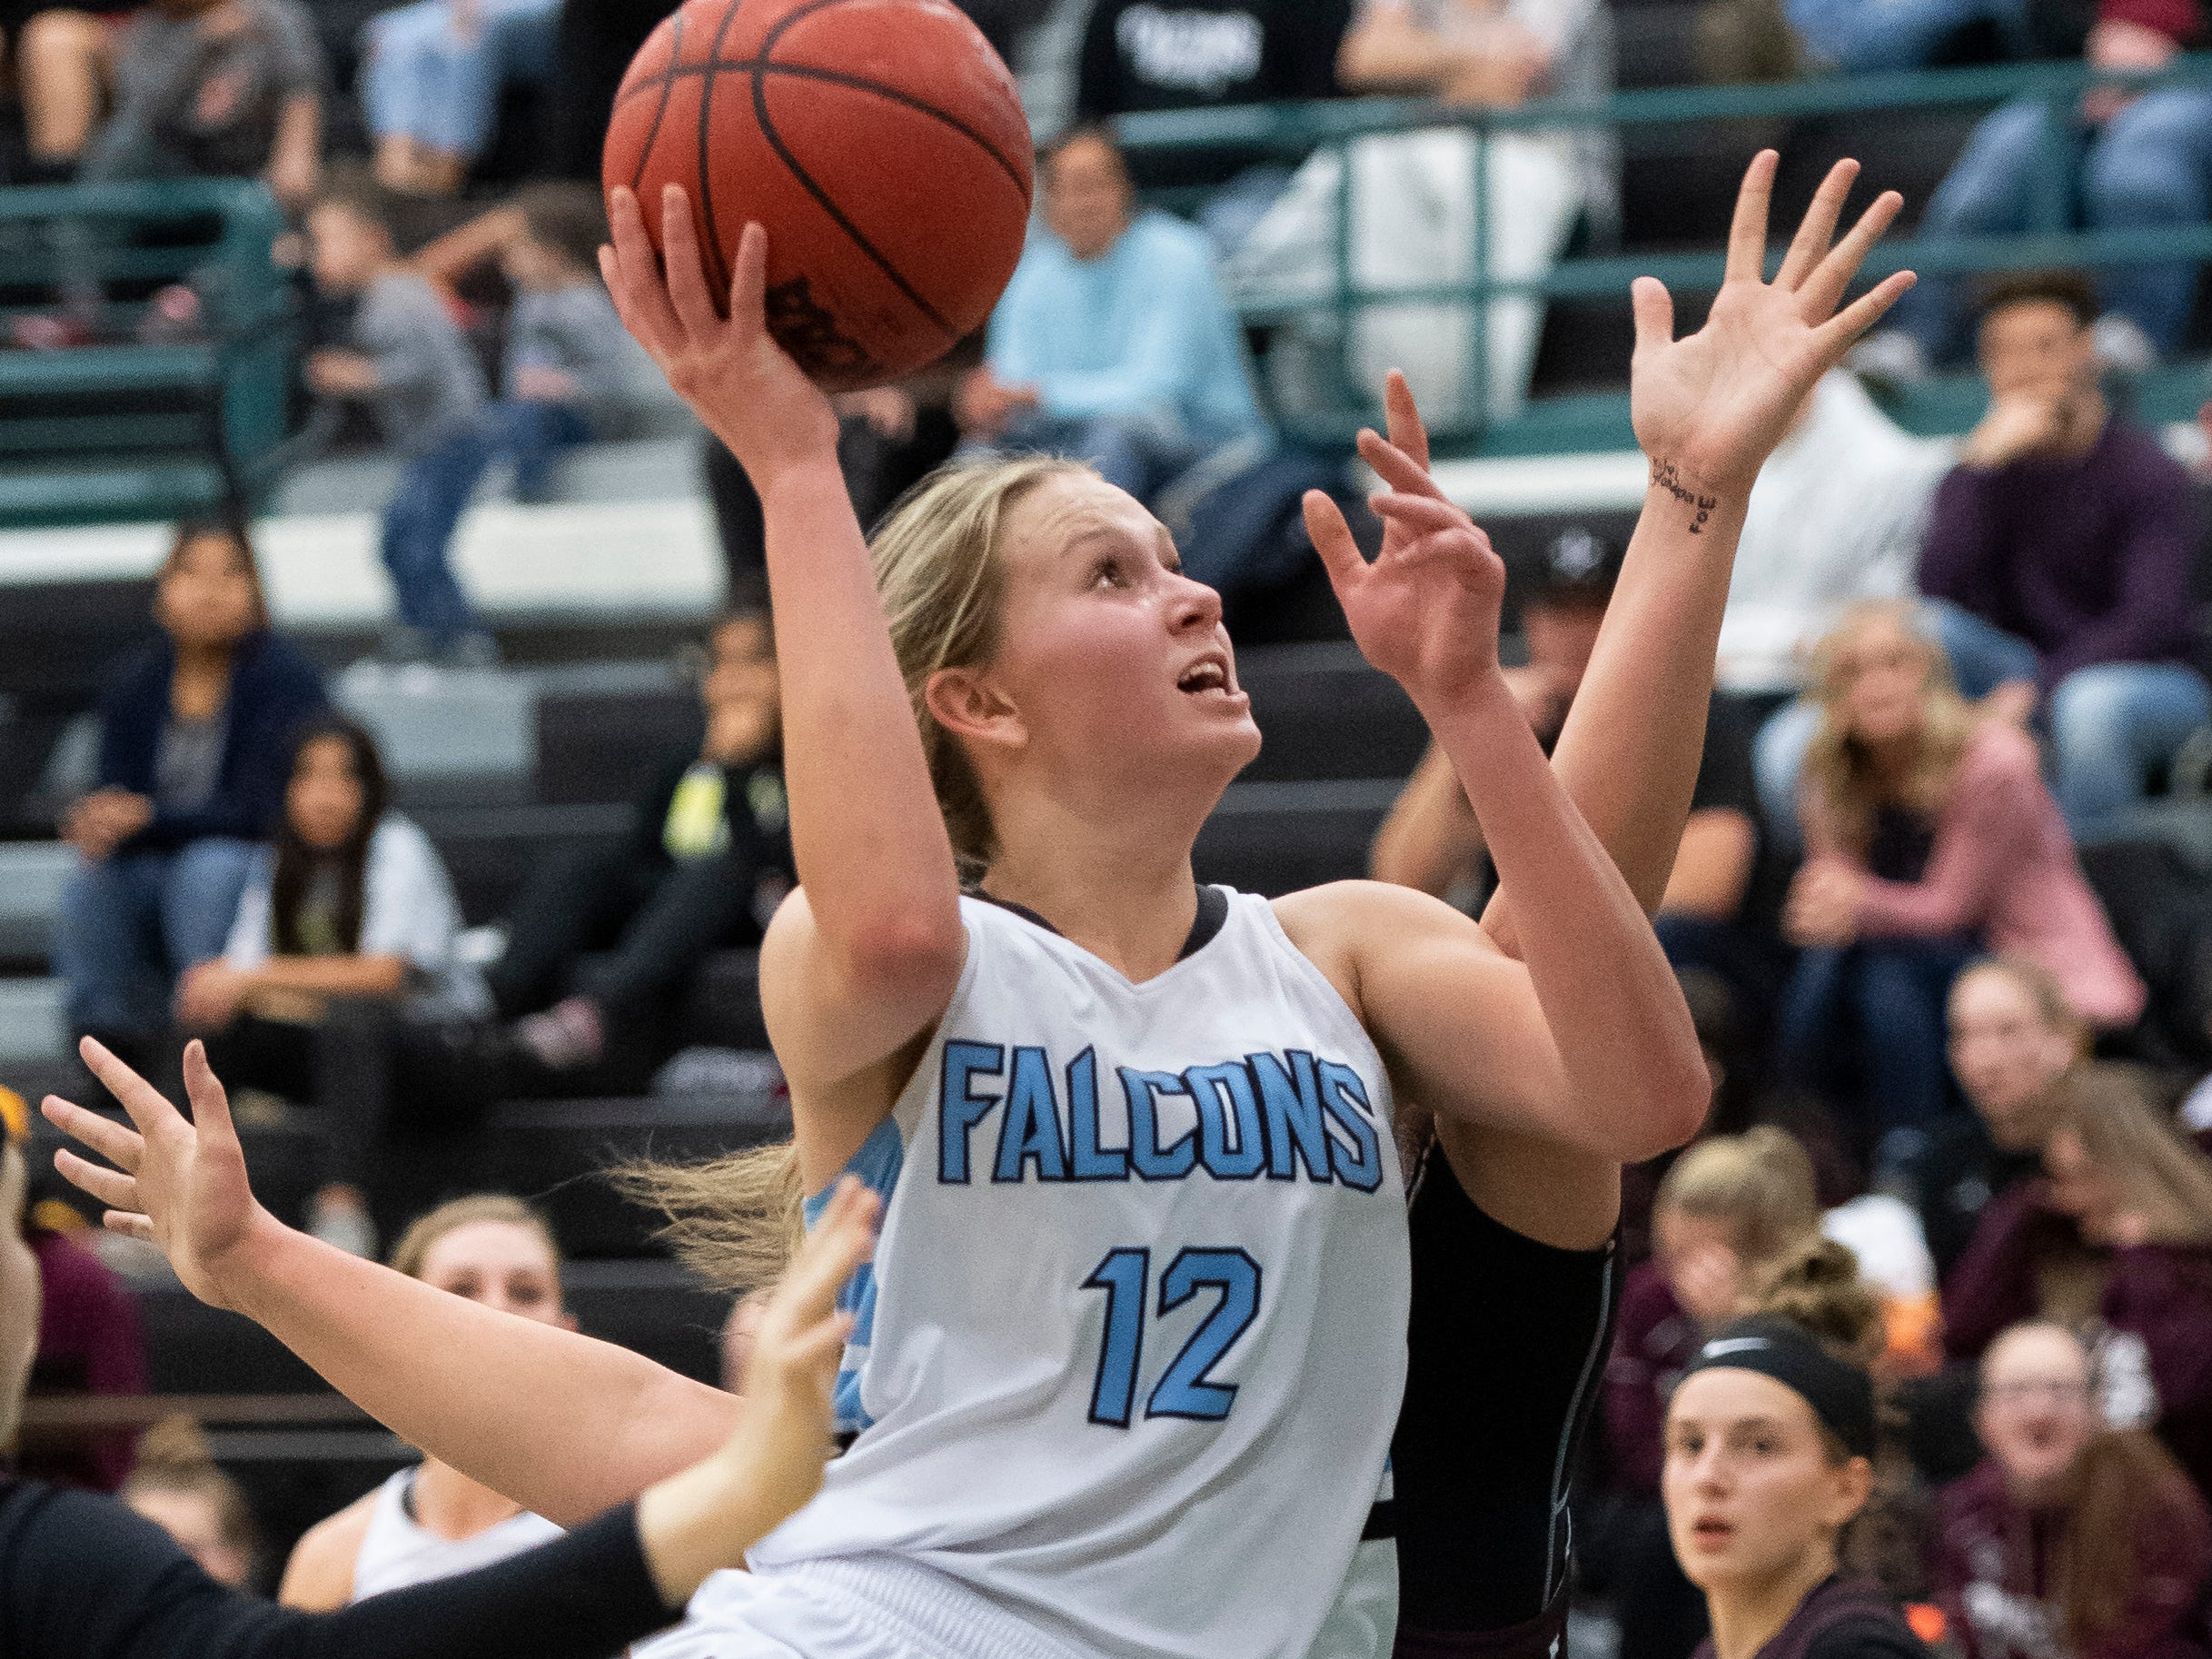 Canyon View High School freshman Harlee Nicoll (12) takes  a shot against Pine View at CVHS Tuesday, January 15, 2019. The CVHS Falcons won, 48-46.